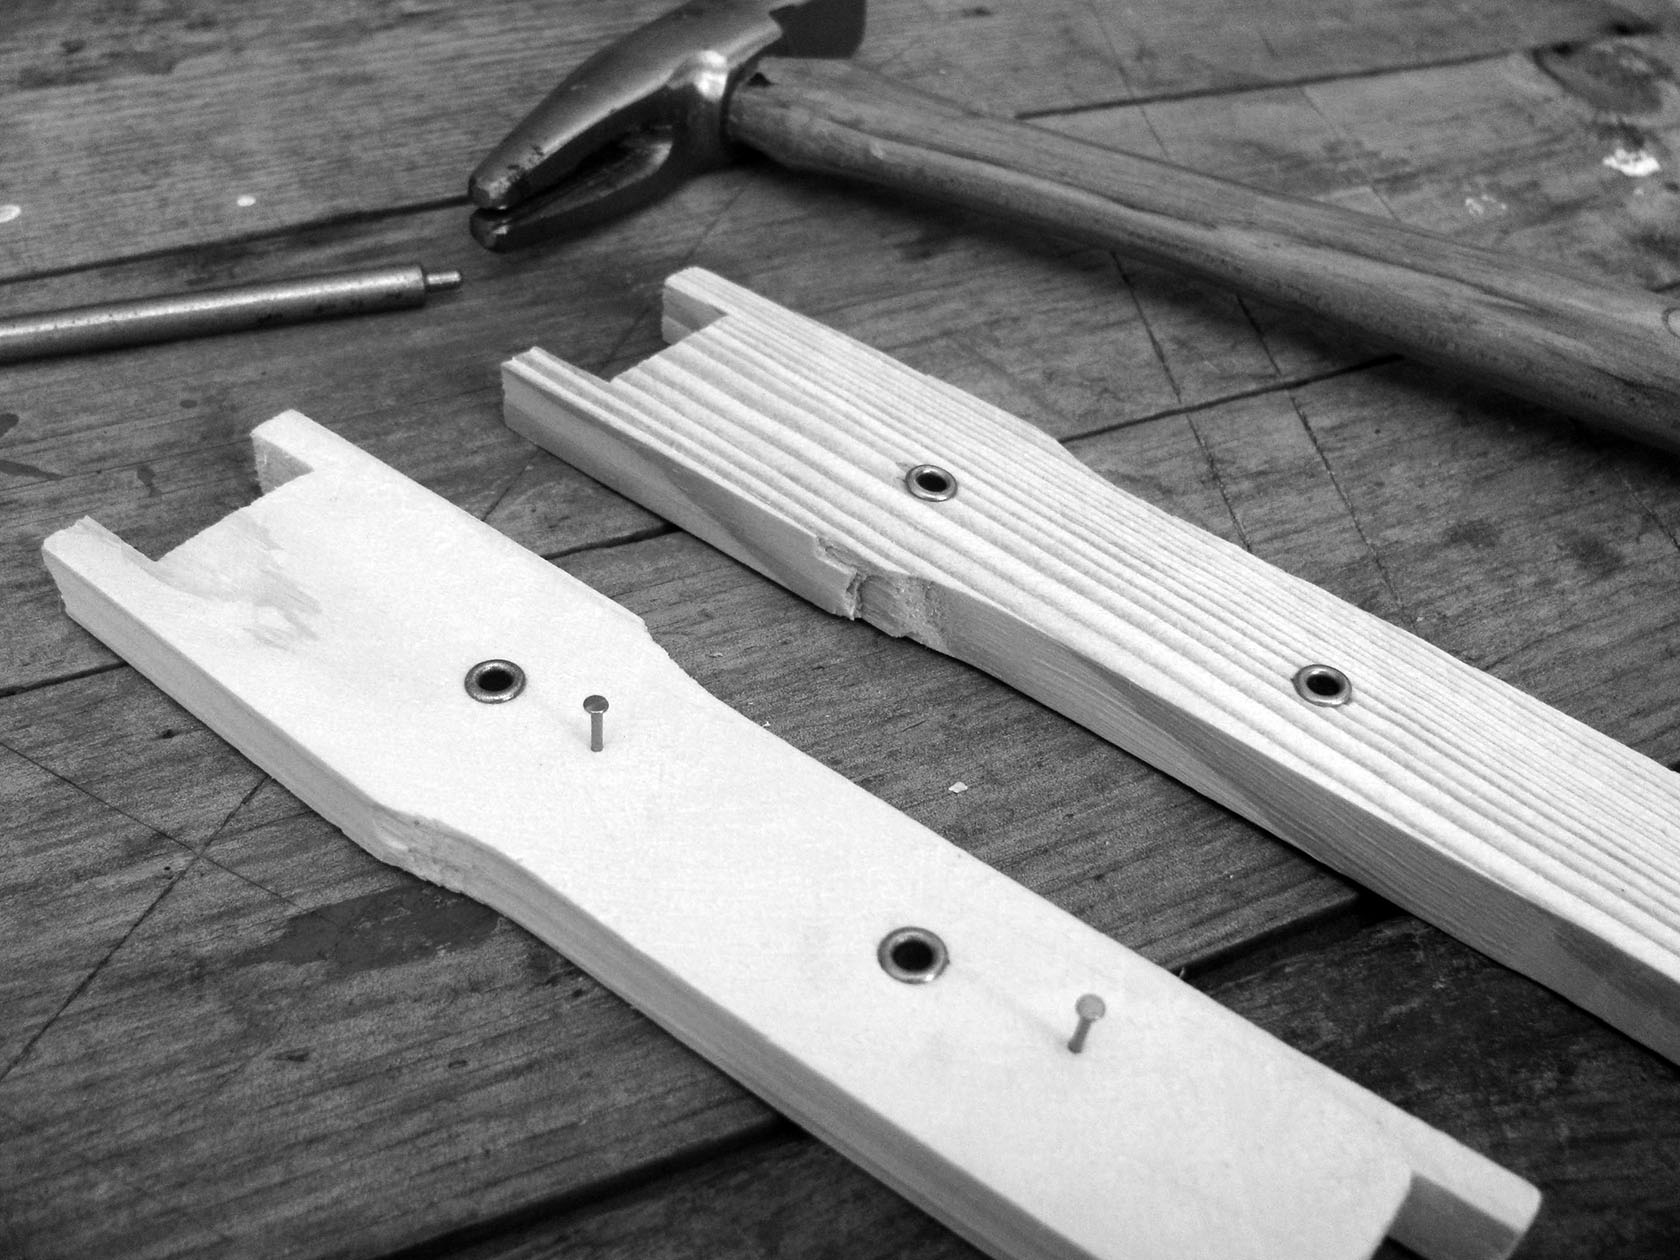 Frame Wiring Shonnards Beekeeping Board It Is Easiest To Prepare Your For Before Assembly Using Eyelet Punch Insert Eyelets Into Each Of The Predrilled Holes On Side